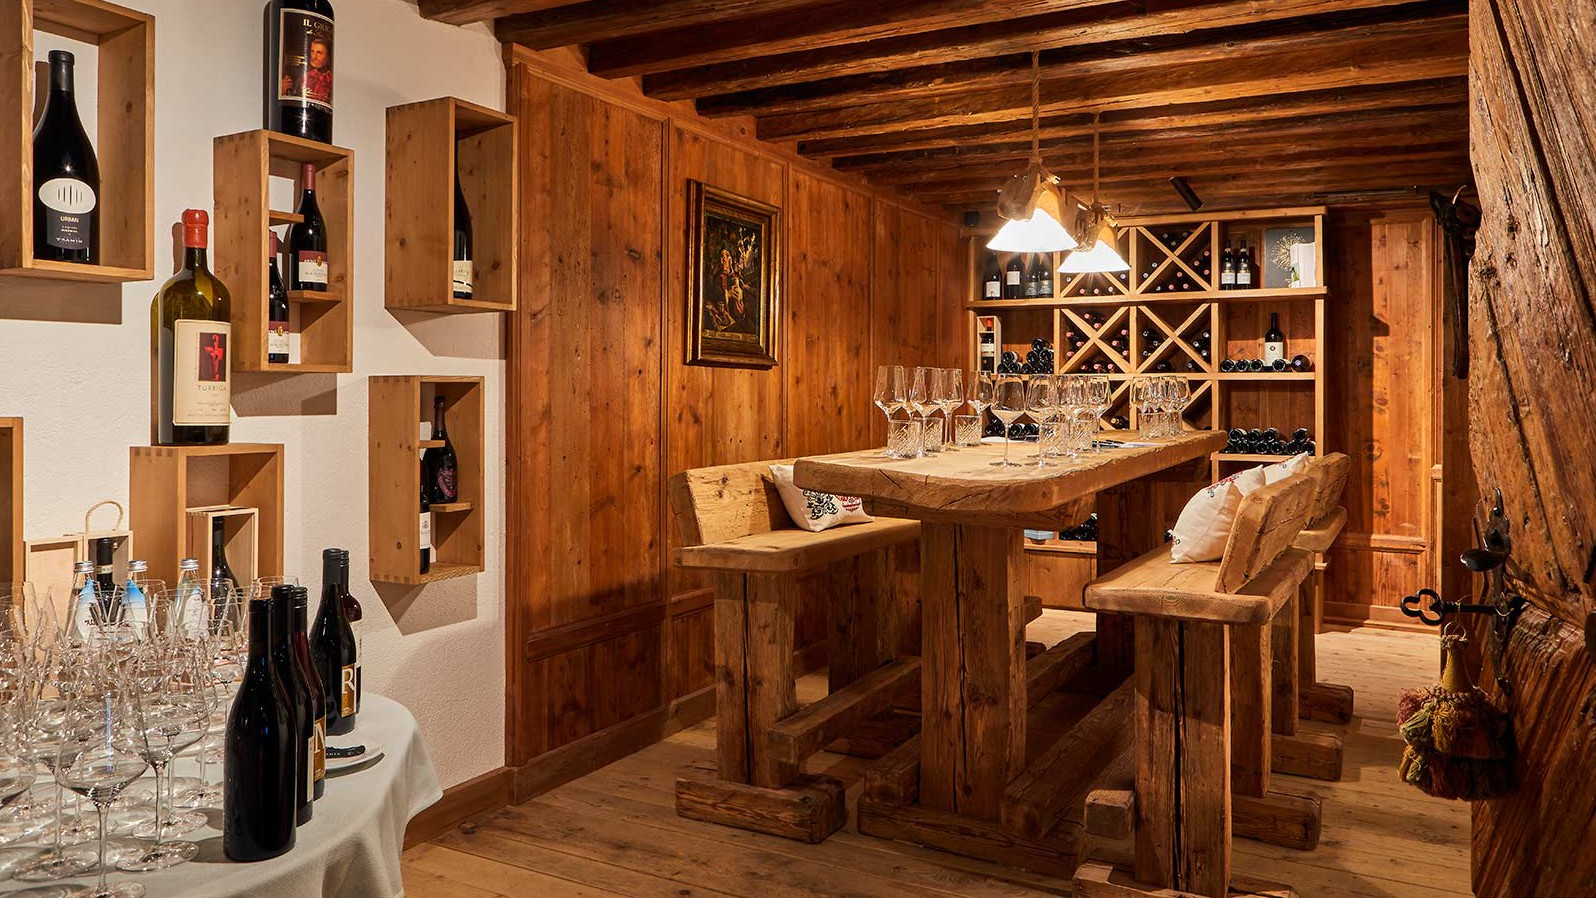 Hotel Sassongher, Corvara and Colfosco - Dining